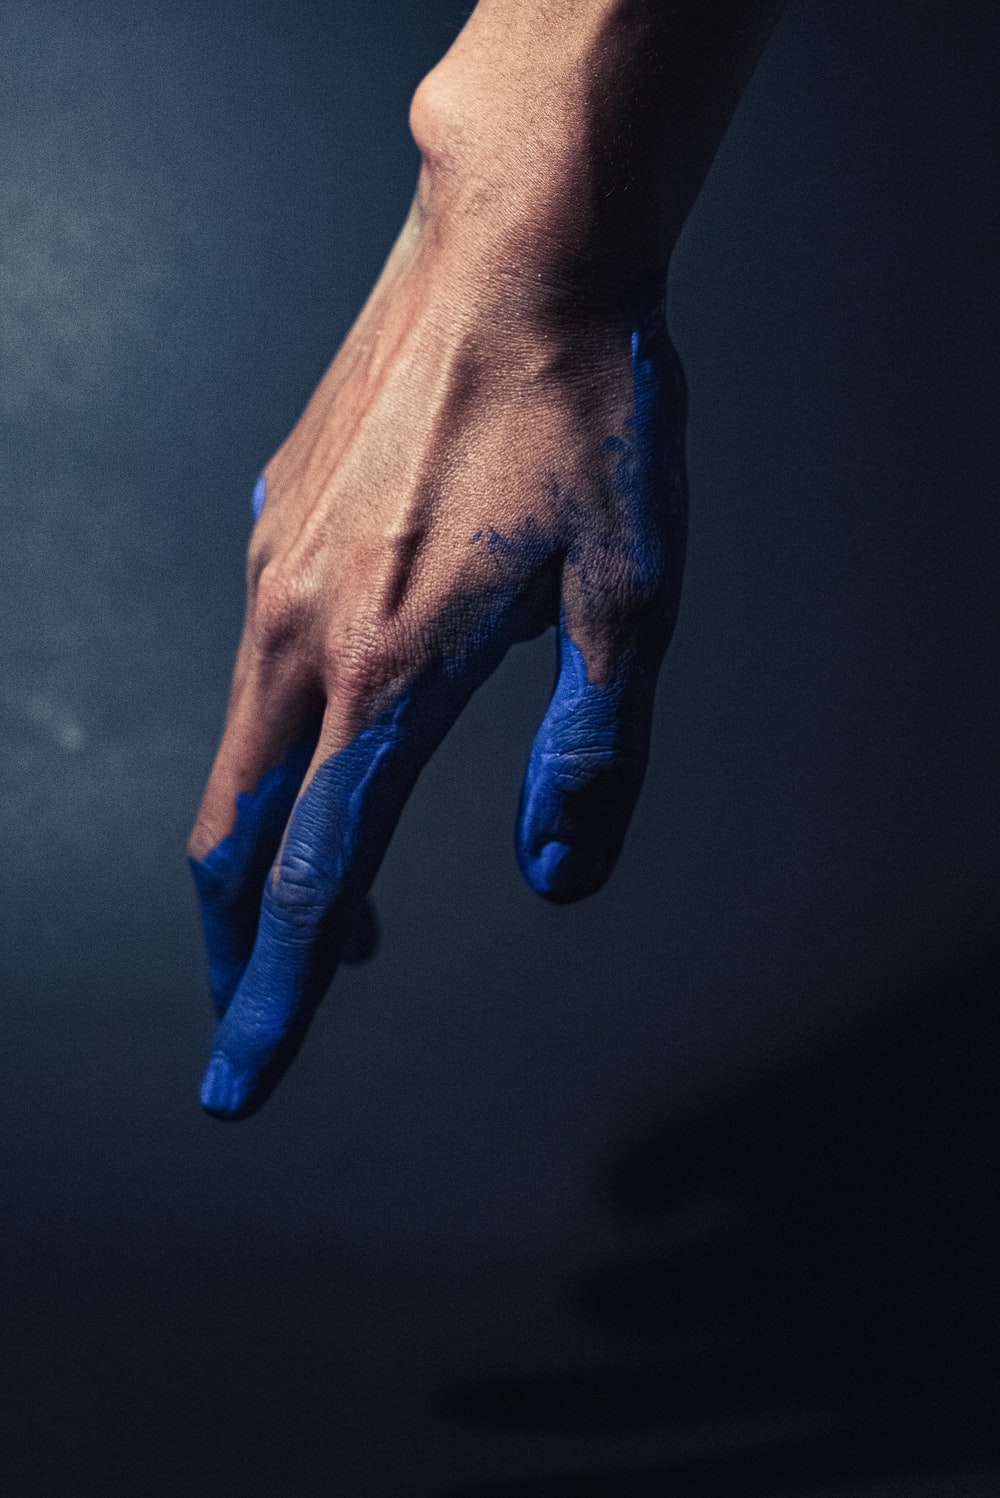 persons left hand with blue nail polish